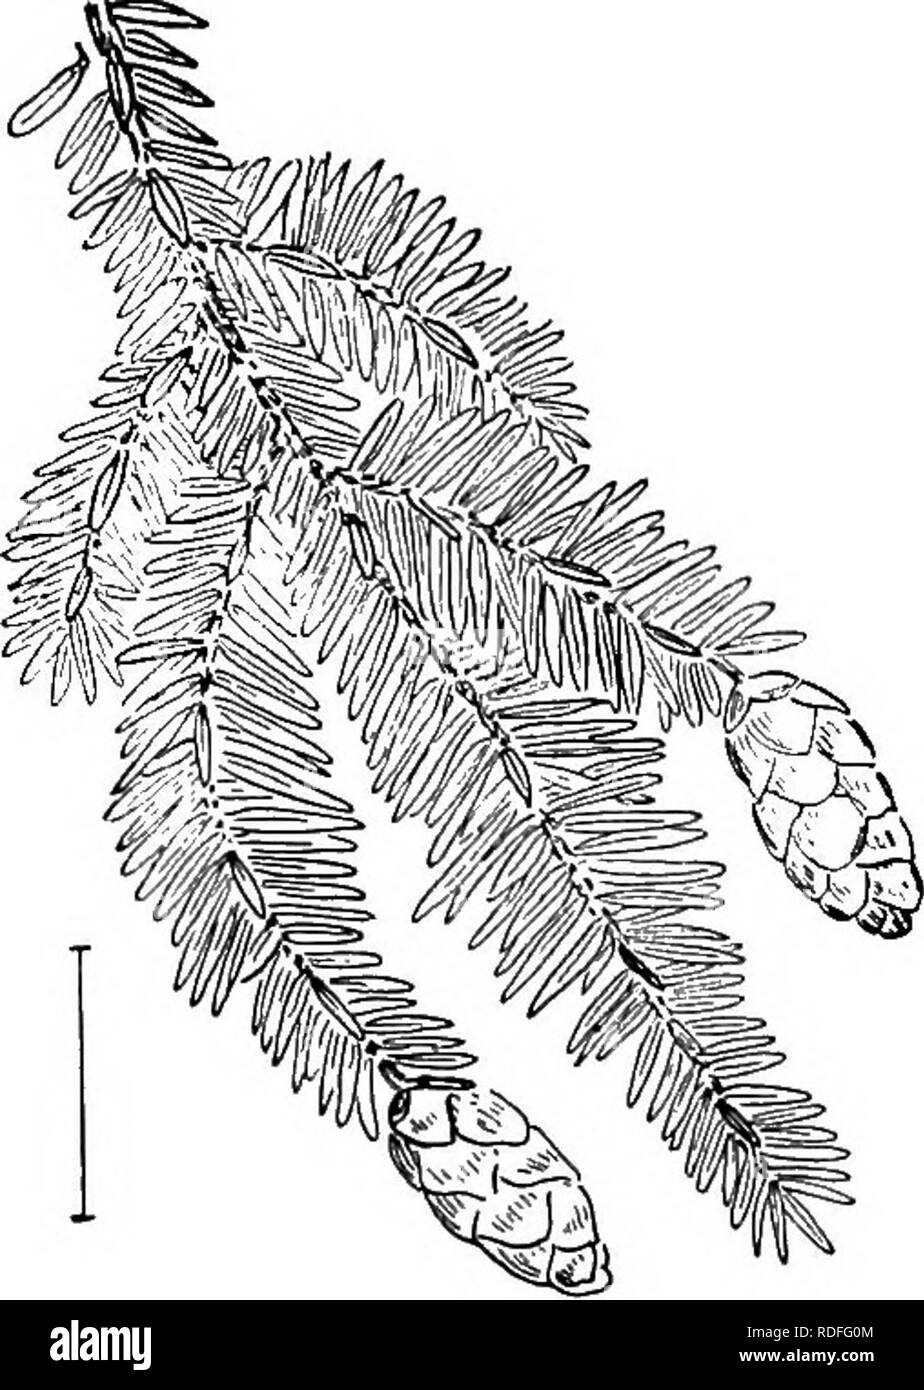 . Ornamental shrubs of the United States (hardy, cultivated). Shrubs. 326 DESCRIPTIONS OF THE SHRUBS Picea. The Spruces, are in the main tall tree-like evergreens with needle-like 4-angled leaves usually ^ to 1| inches long, attached to a grooved twig on brownish projections. The readiness with which the leaves fall from the severed twigs and the roughness of the twigs, due to these projecting points, are the hest distinctions for separating spruces from other cone-bearing plants. The commonest species in cultivation in this country is the Norway Spruce—Picea Abies(P. exc^lsa),—and of. Fig. 58 - Stock Image